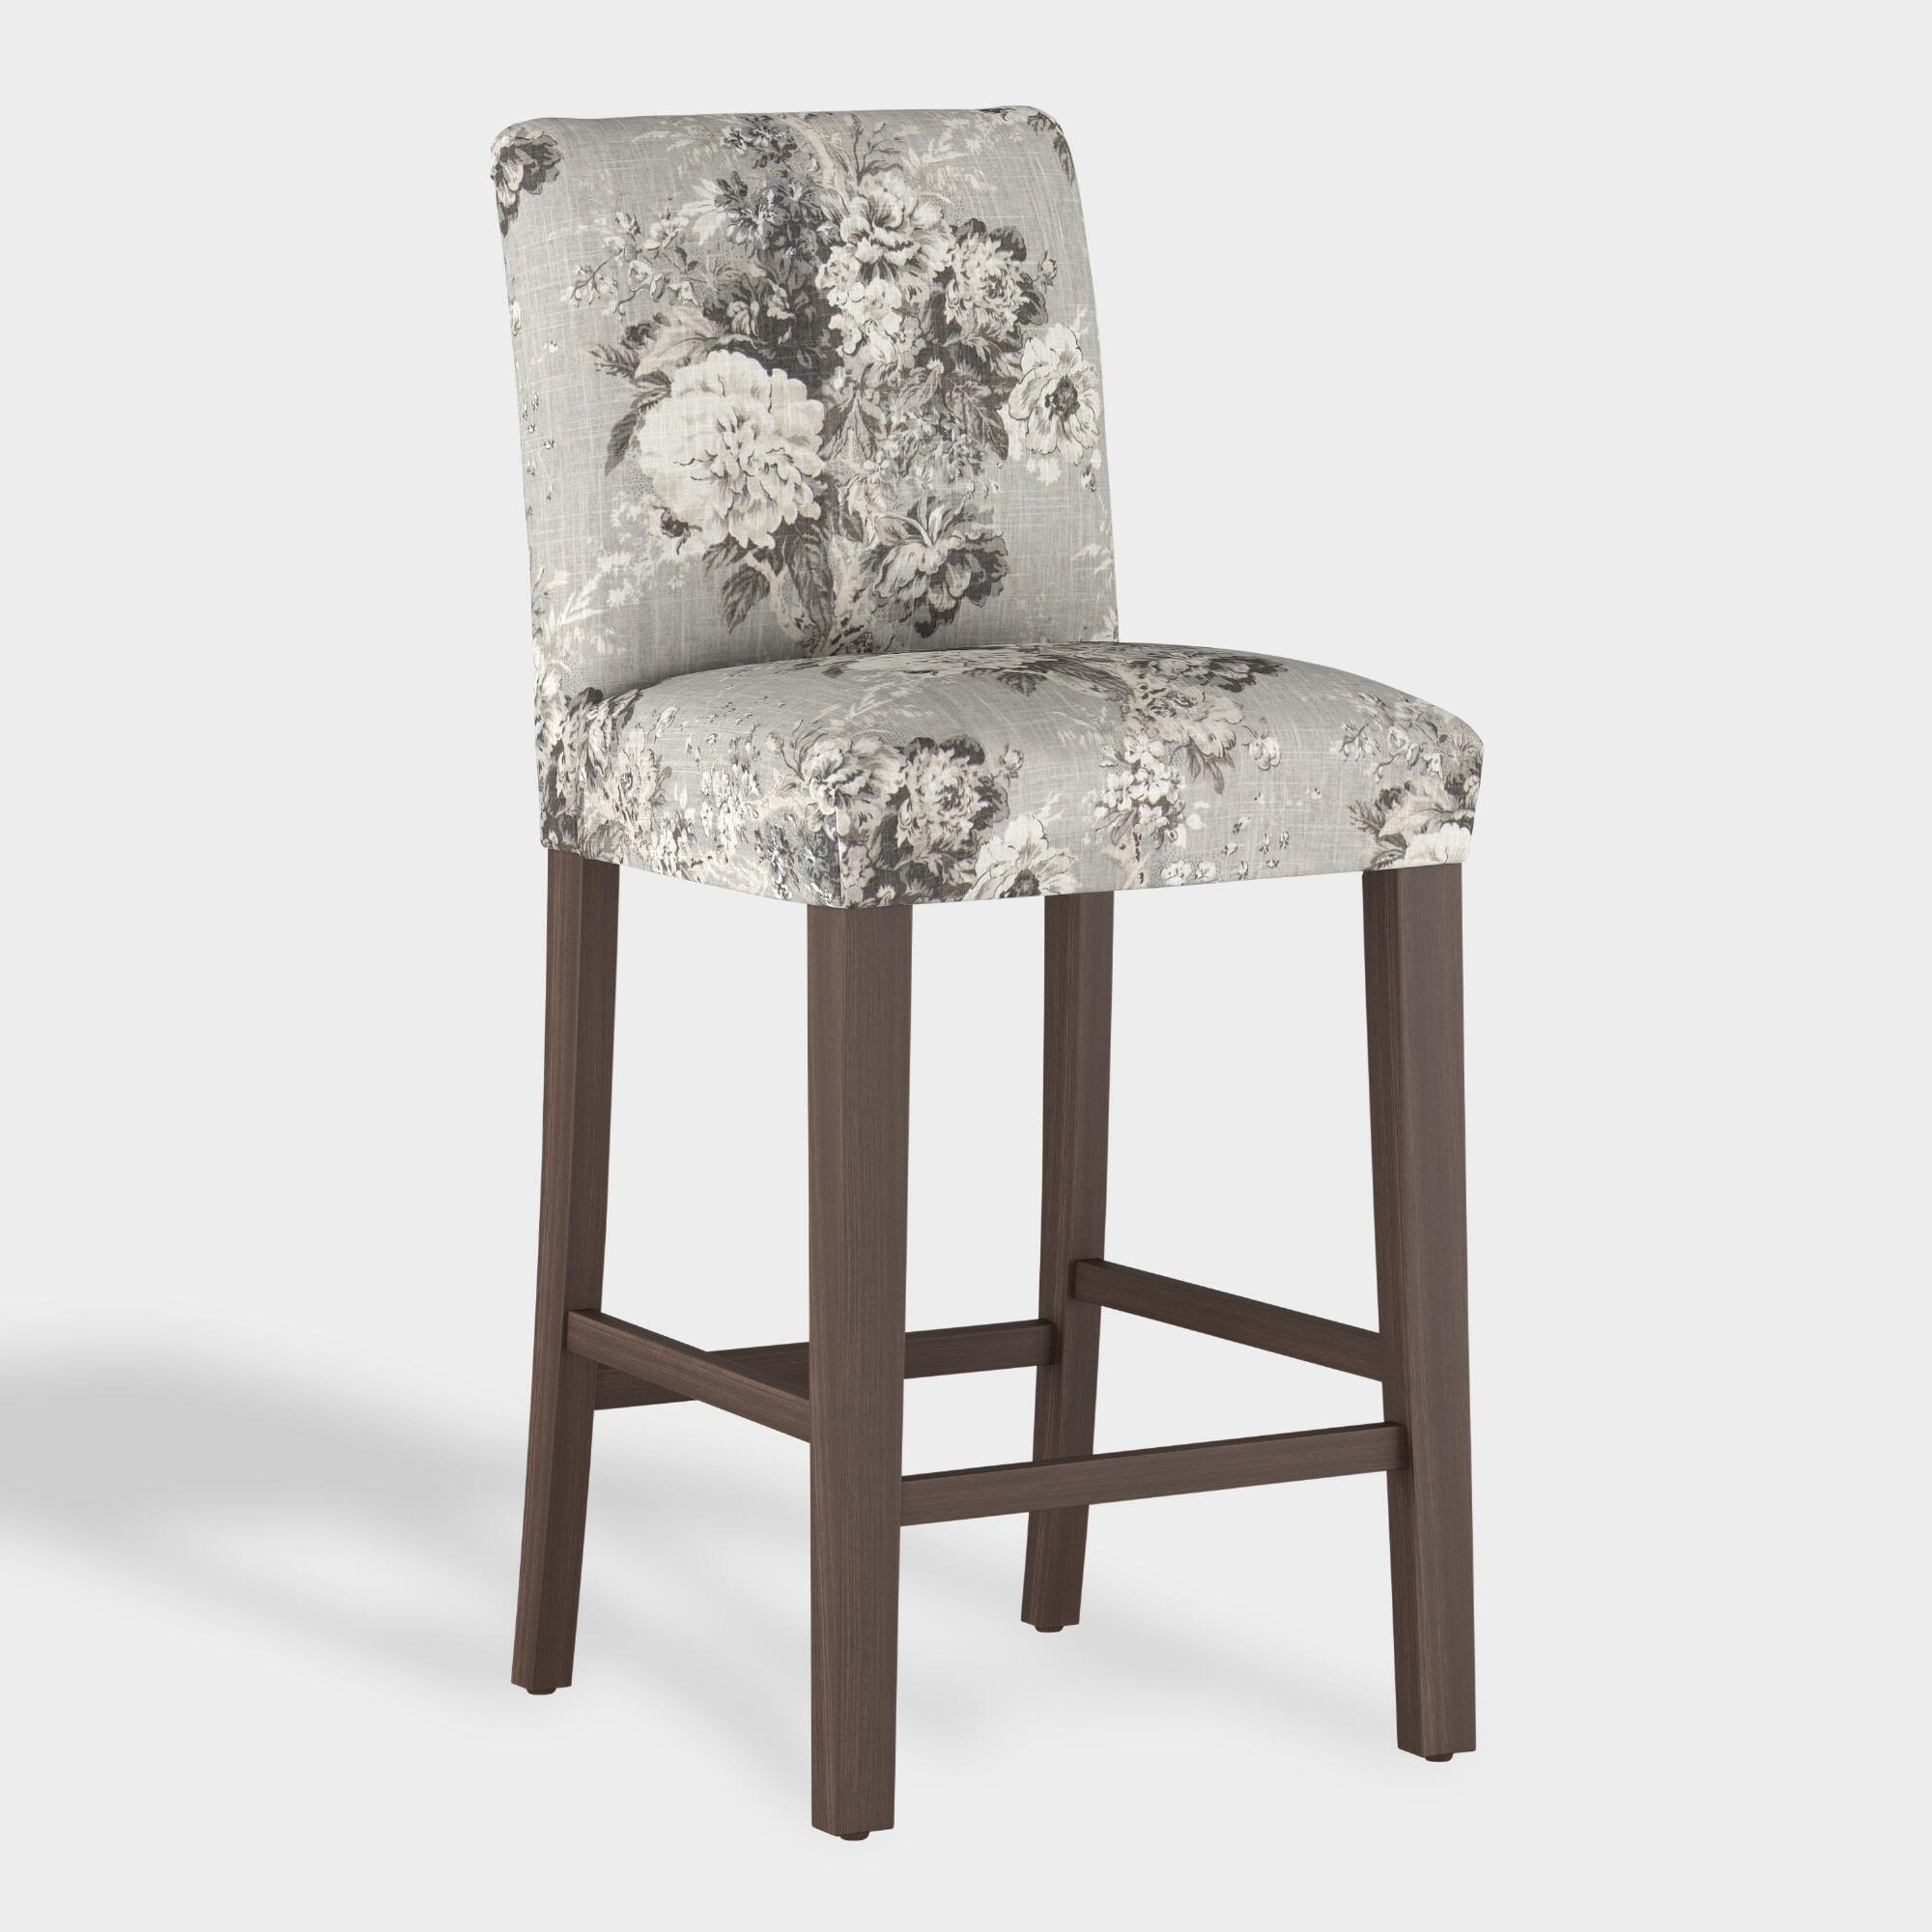 Cool Gray Floral Kerri Upholstered Barstool By World Market Beatyapartments Chair Design Images Beatyapartmentscom